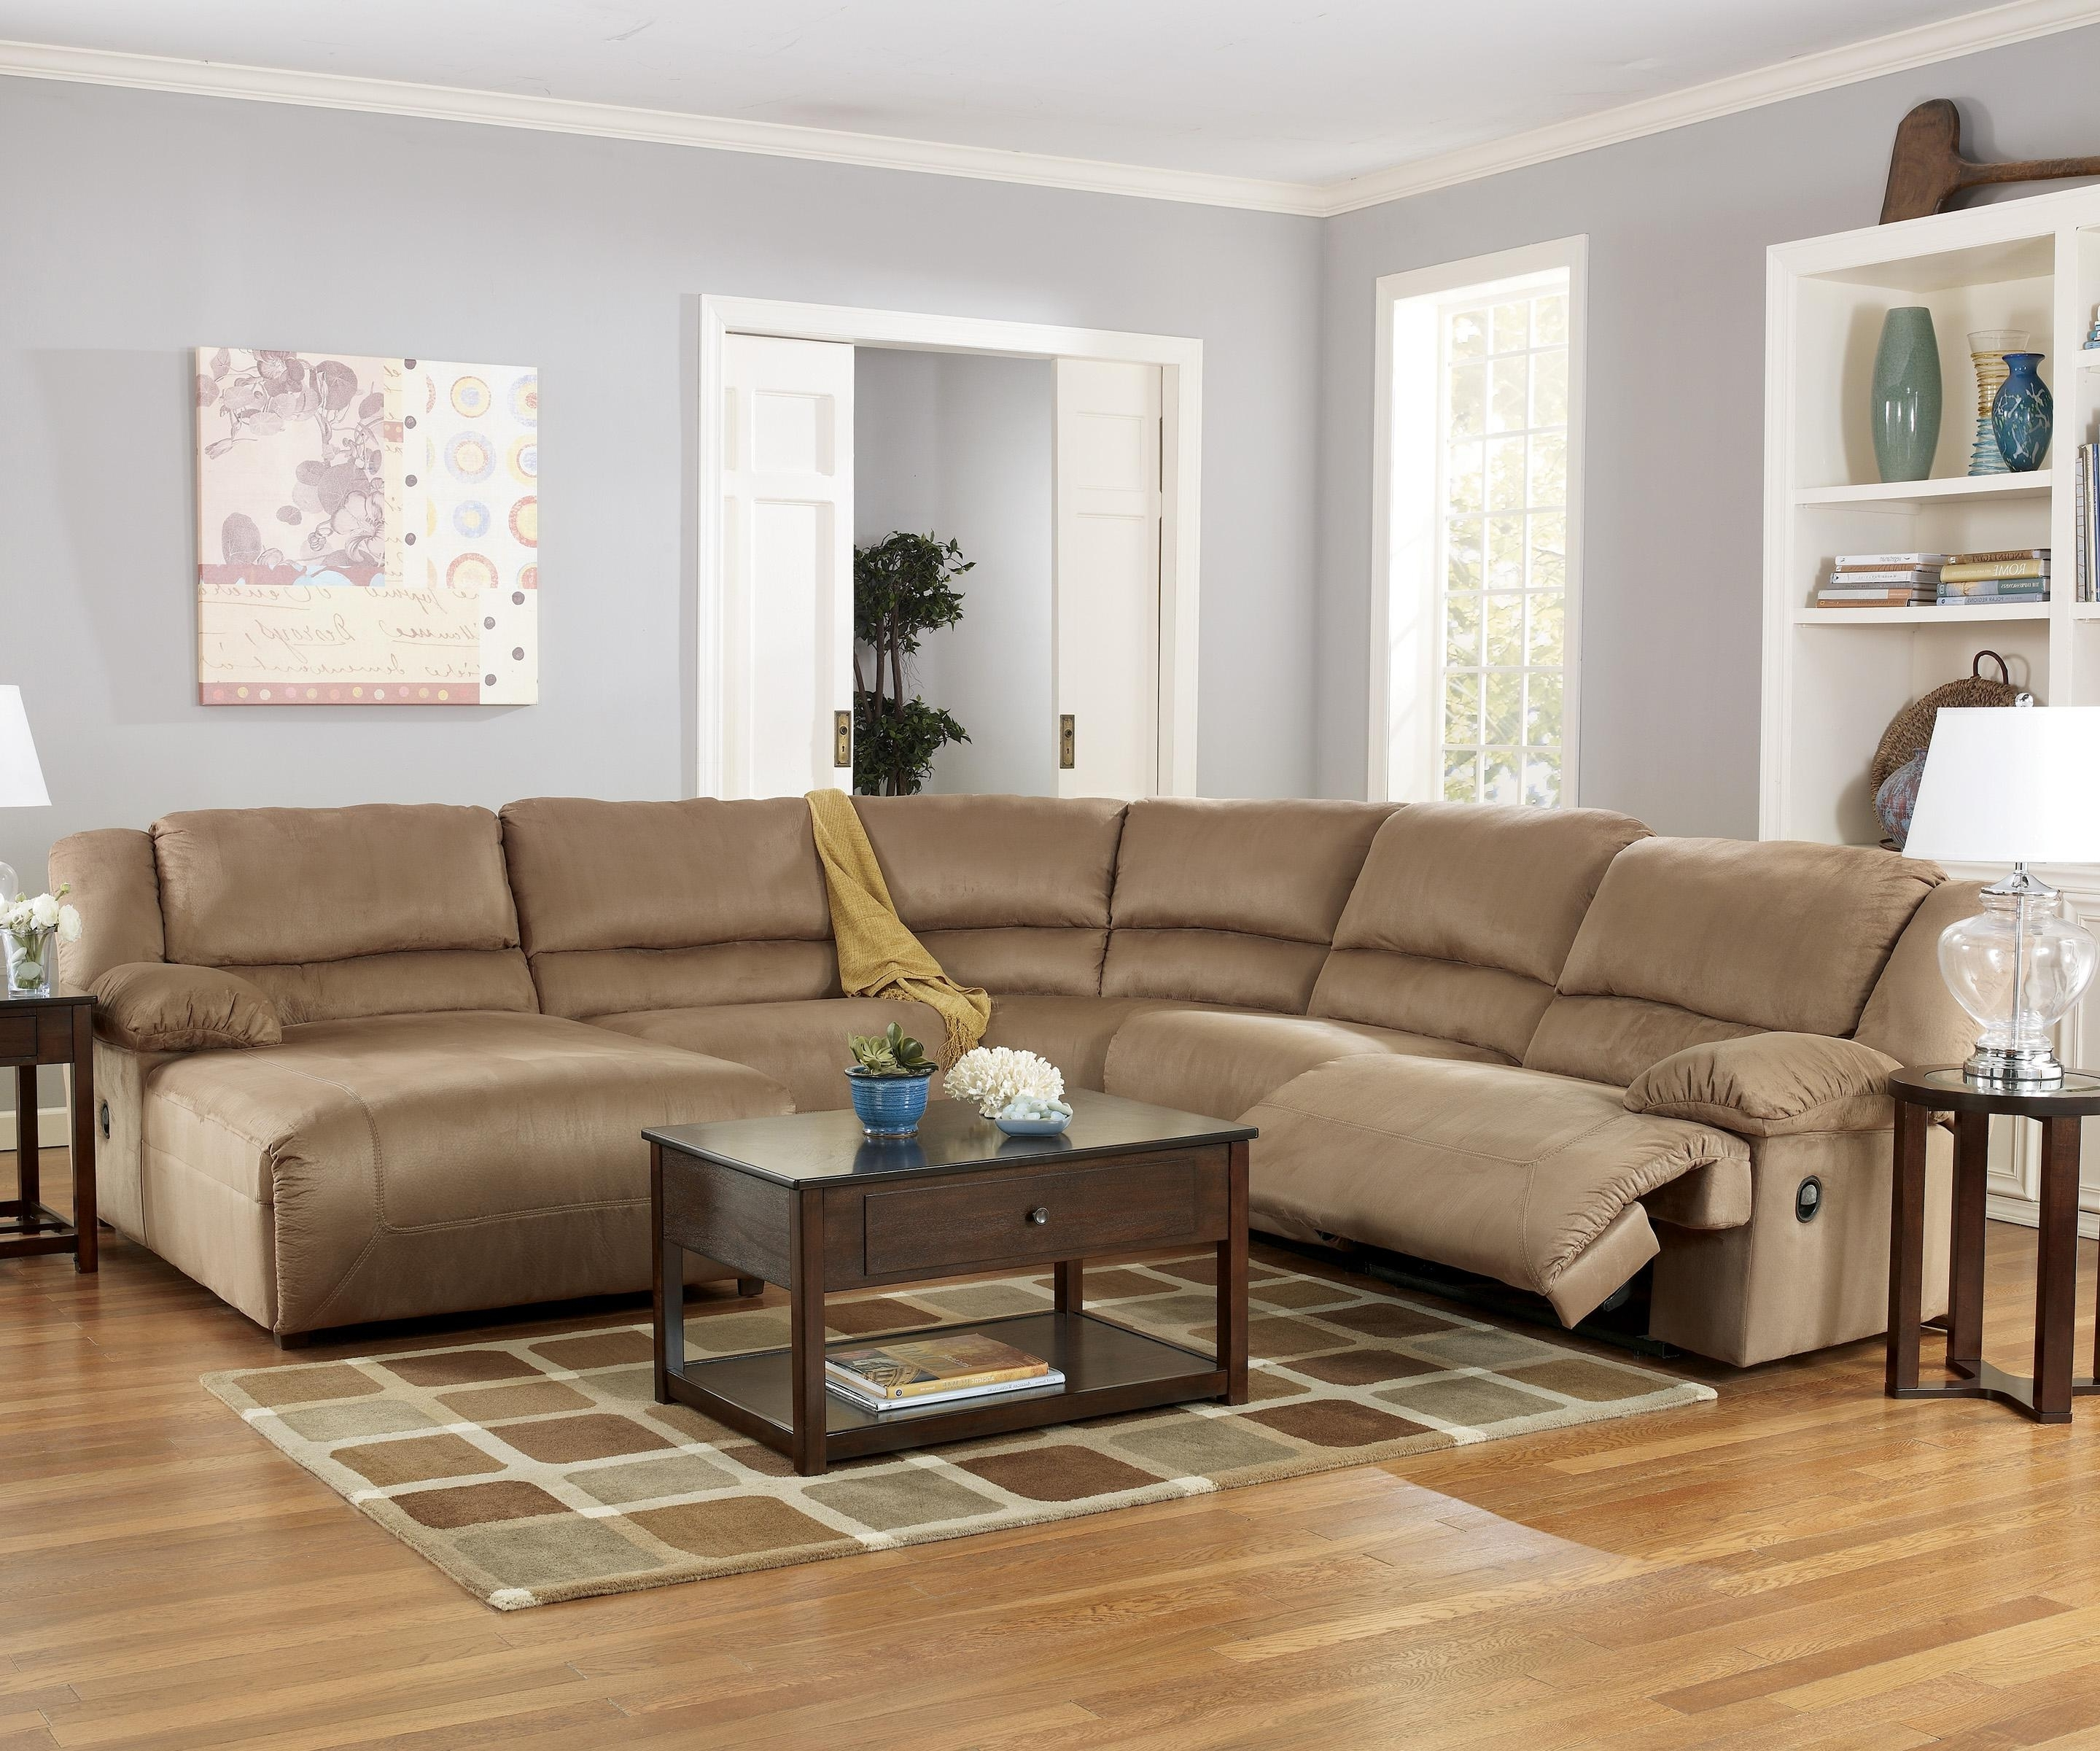 Ashley Furniture Pertaining To Widely Used El Paso Tx Sectional Sofas (Gallery 11 of 20)